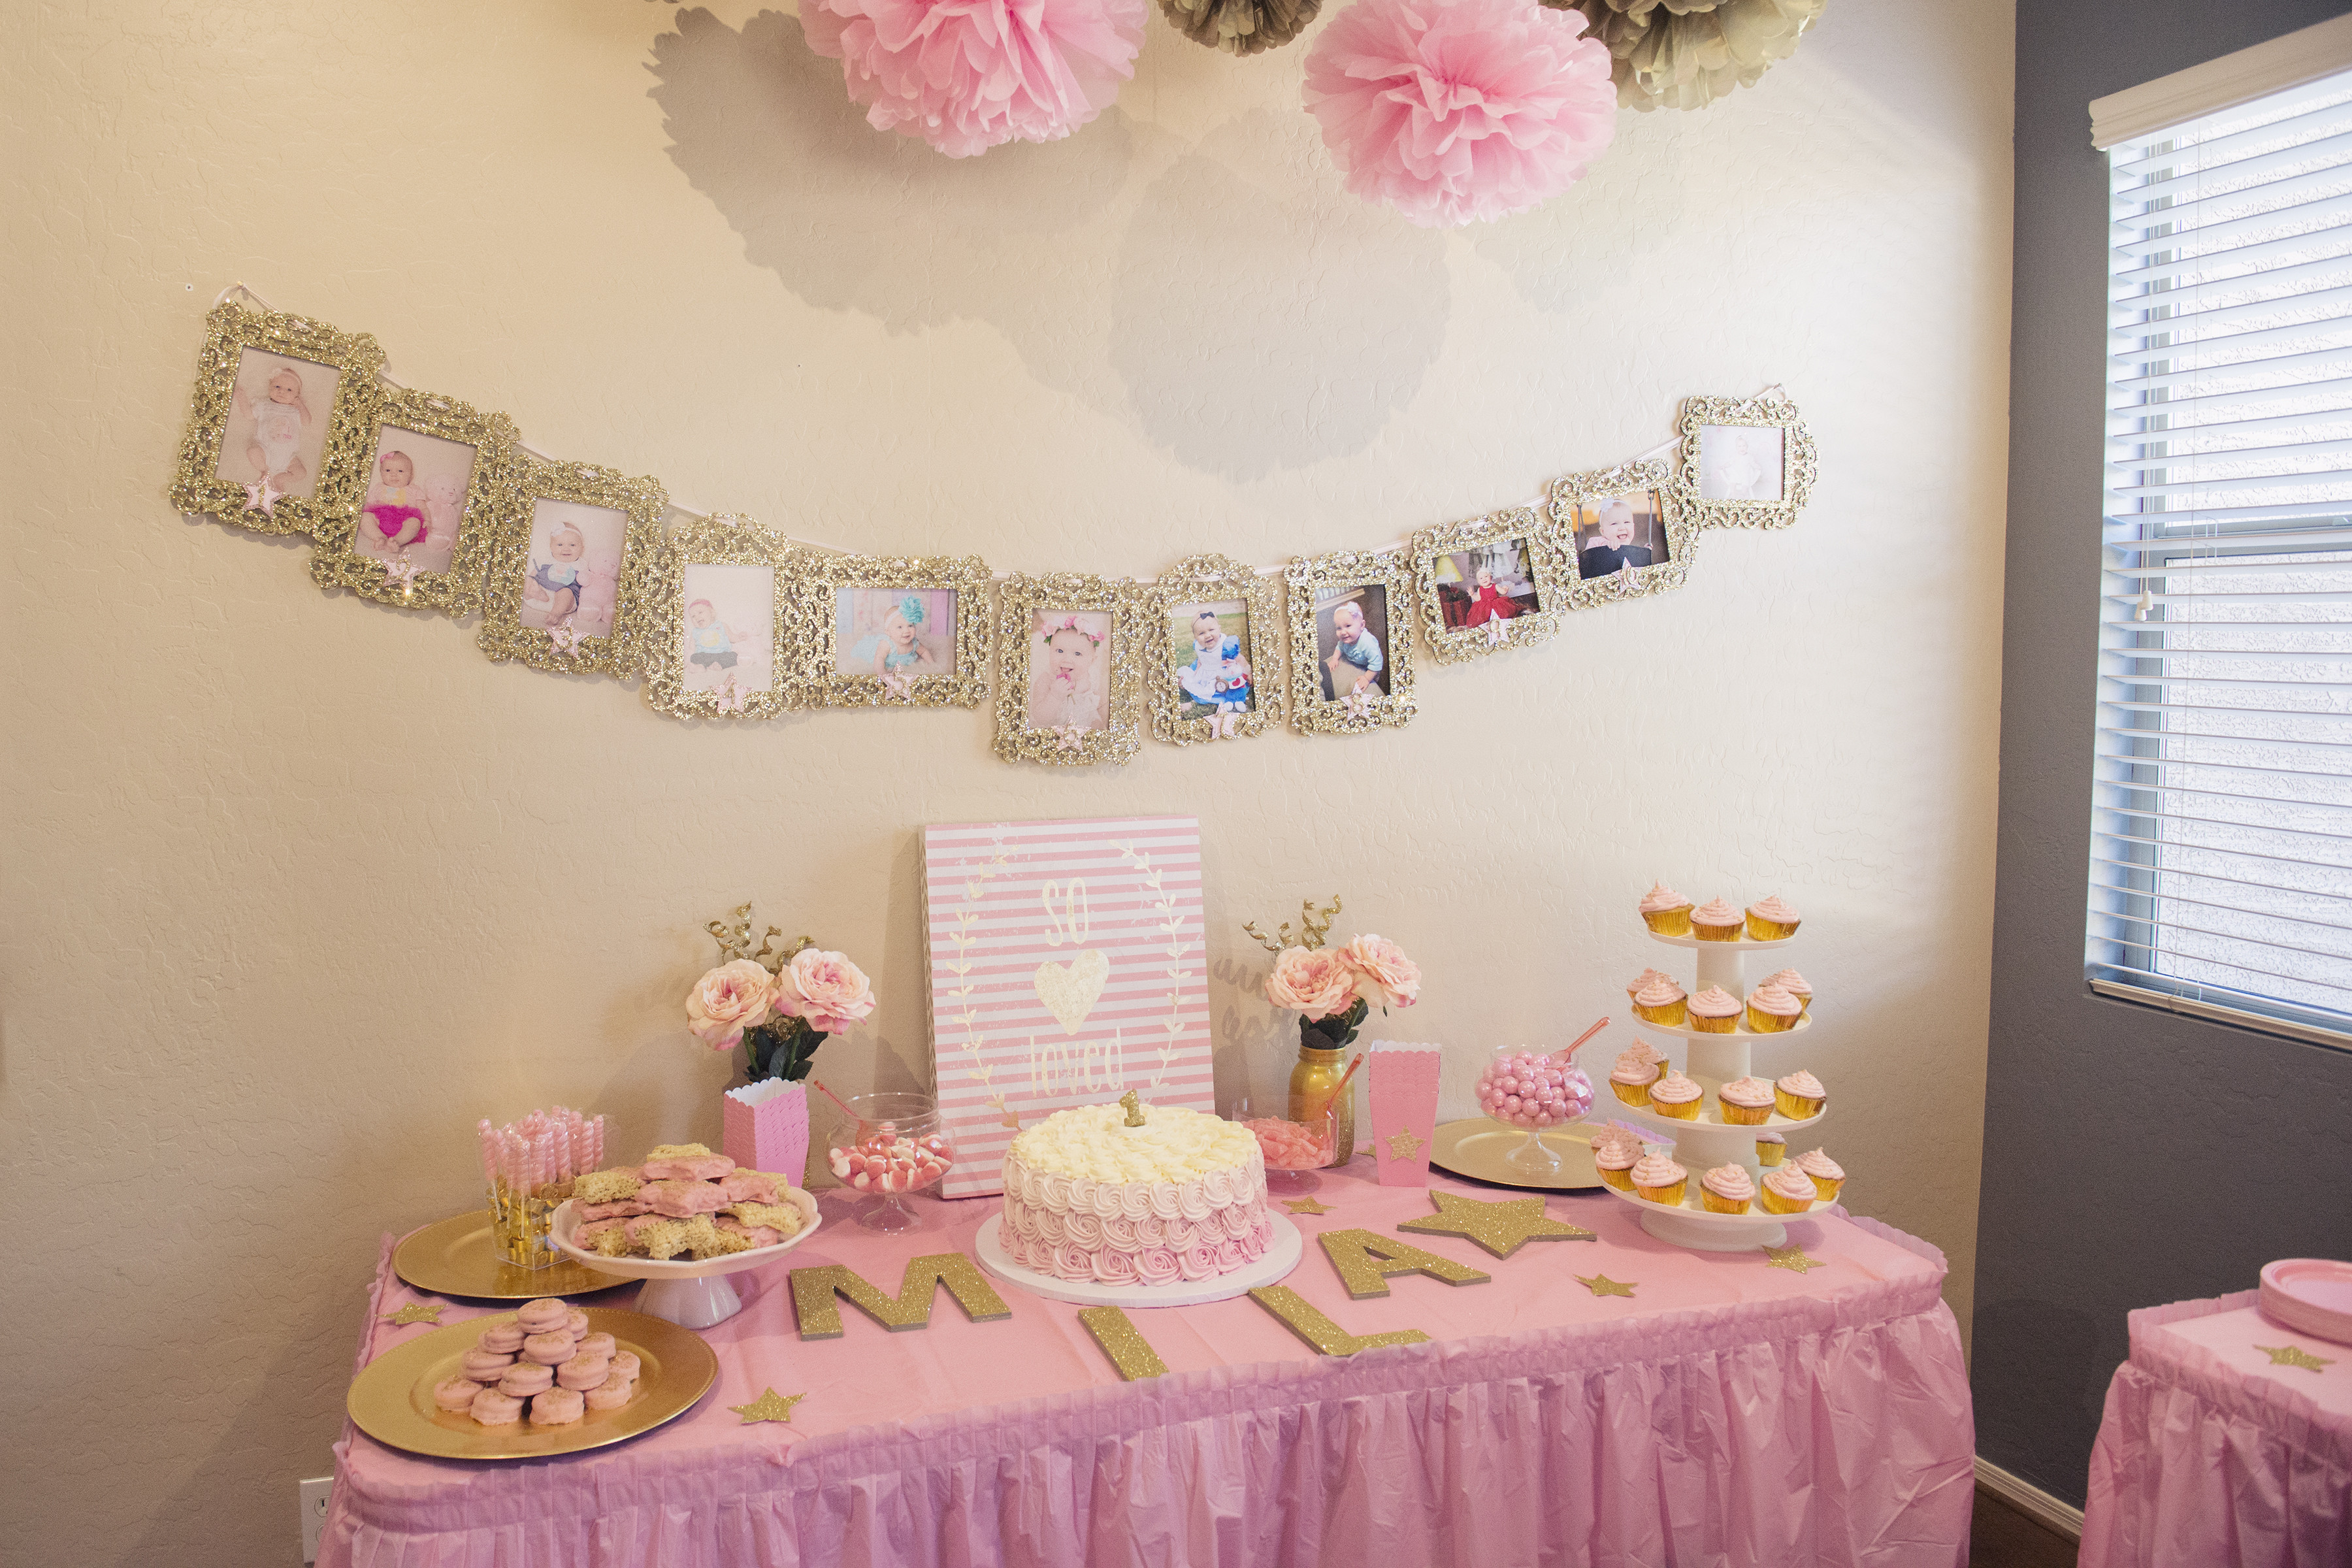 Best ideas about Pink And Gold First Birthday Decorations . Save or Pin Miss Mila s First Birthday Party Pink & Gold Twinkle Now.